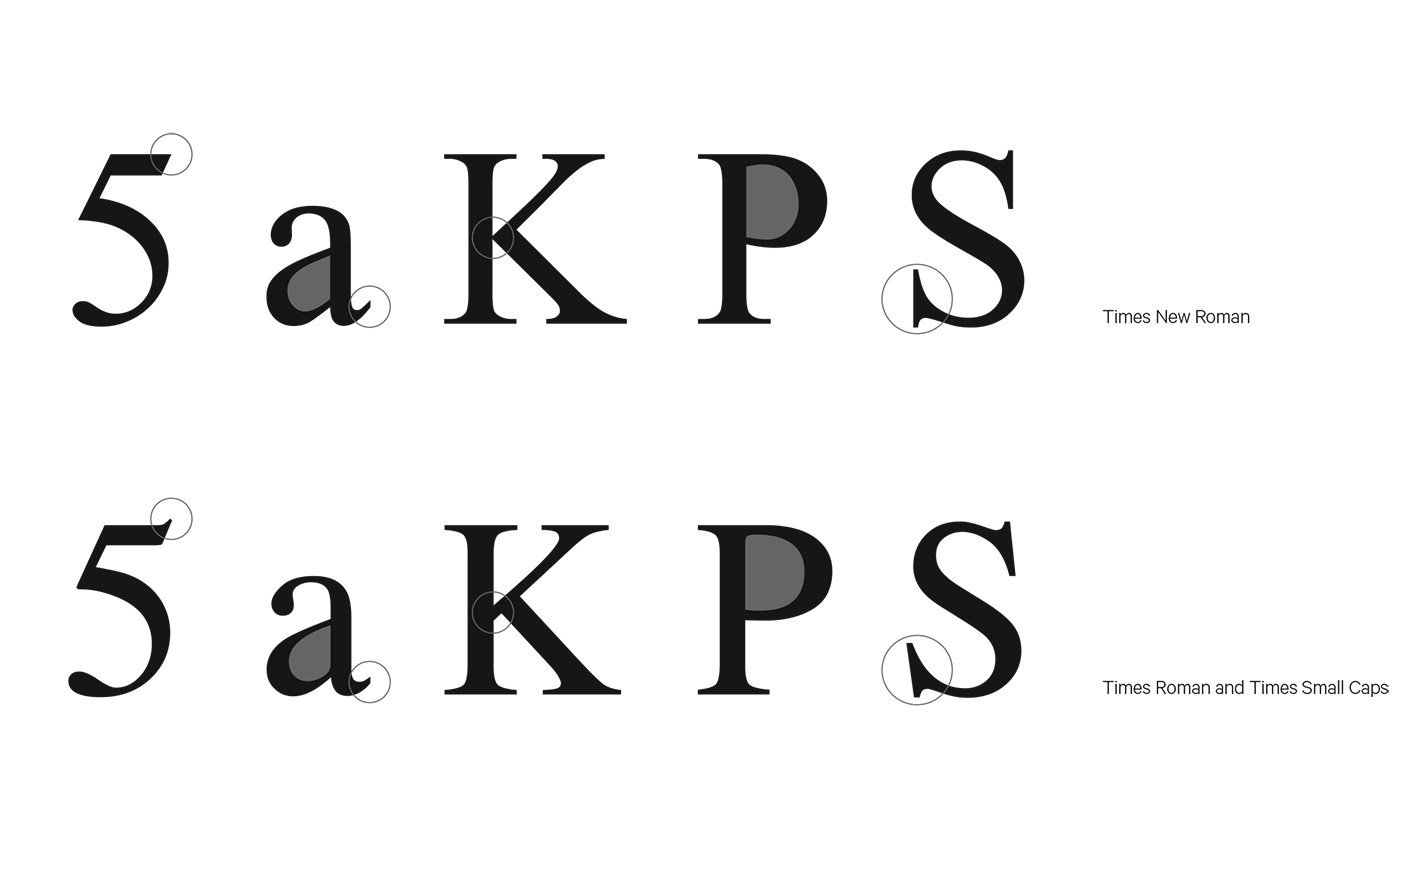 Although Times New Roman and Times are very similar, various differences were developed between the versions marketed by Linotype and Monotype when the master fonts were transferred from metal to photo and digital media.